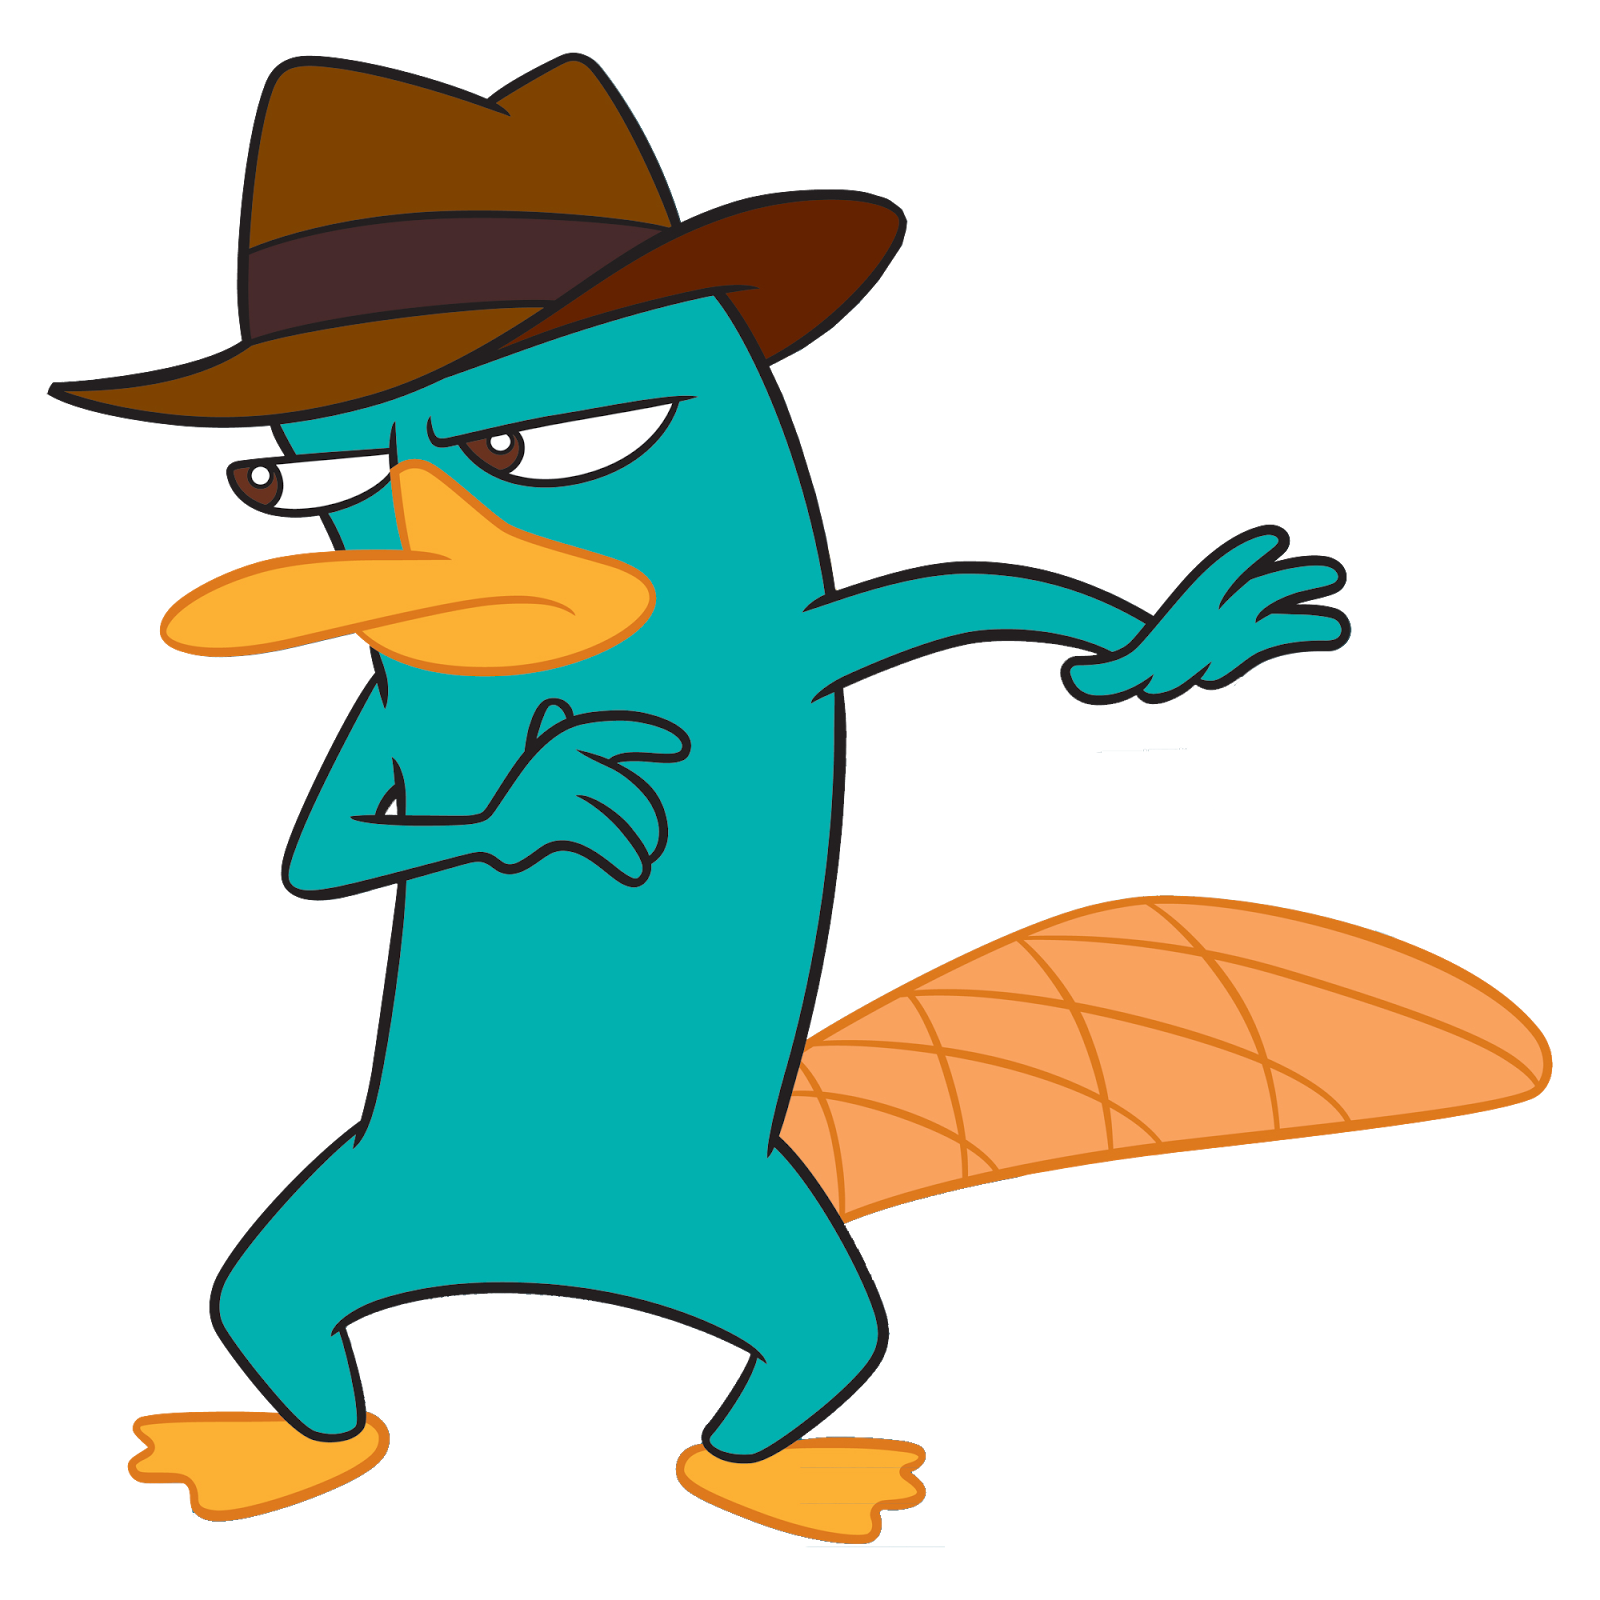 Render Perry el ornitorrinco